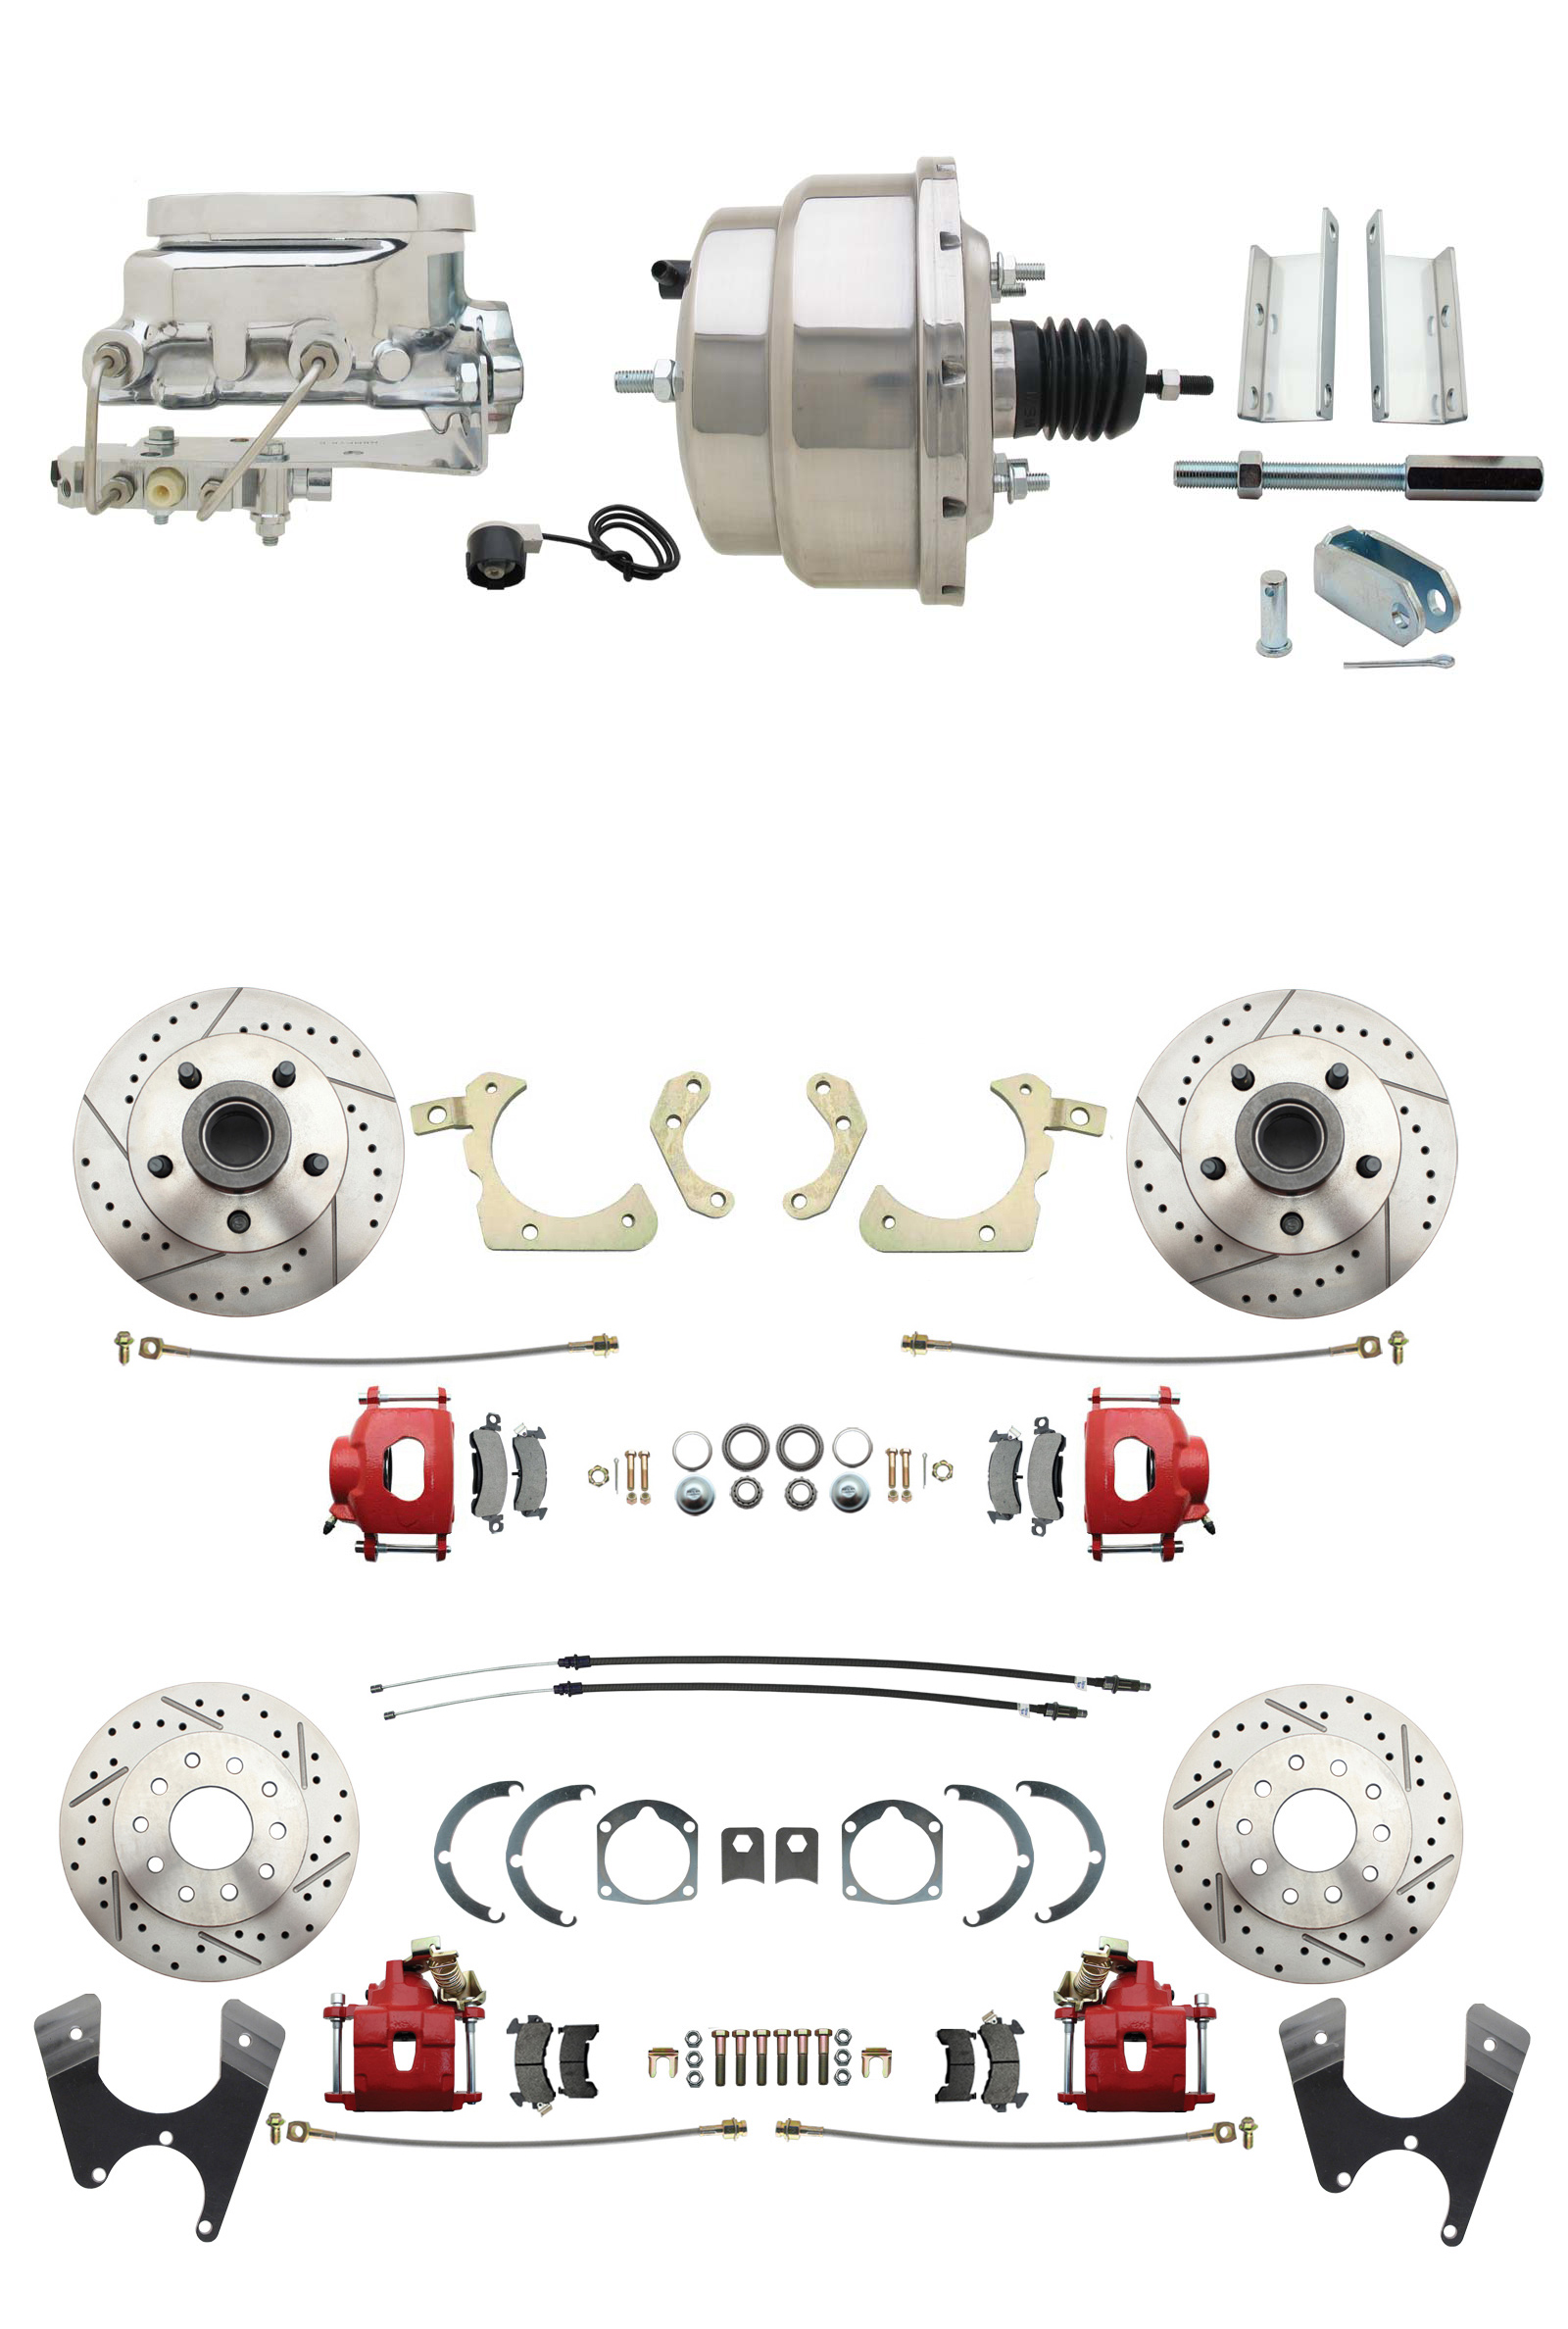 1955-1958 GM Full Size Front & Rear Power Disc Brake Kit Red Powder Coated Calipers Drilled/Slotted Rotors (Impala, Bel Air, Biscayne) & 8 Dual Chrome Booster Conversion Kit W/ Flat Top Chrome Master Cylinder Bottom Mou